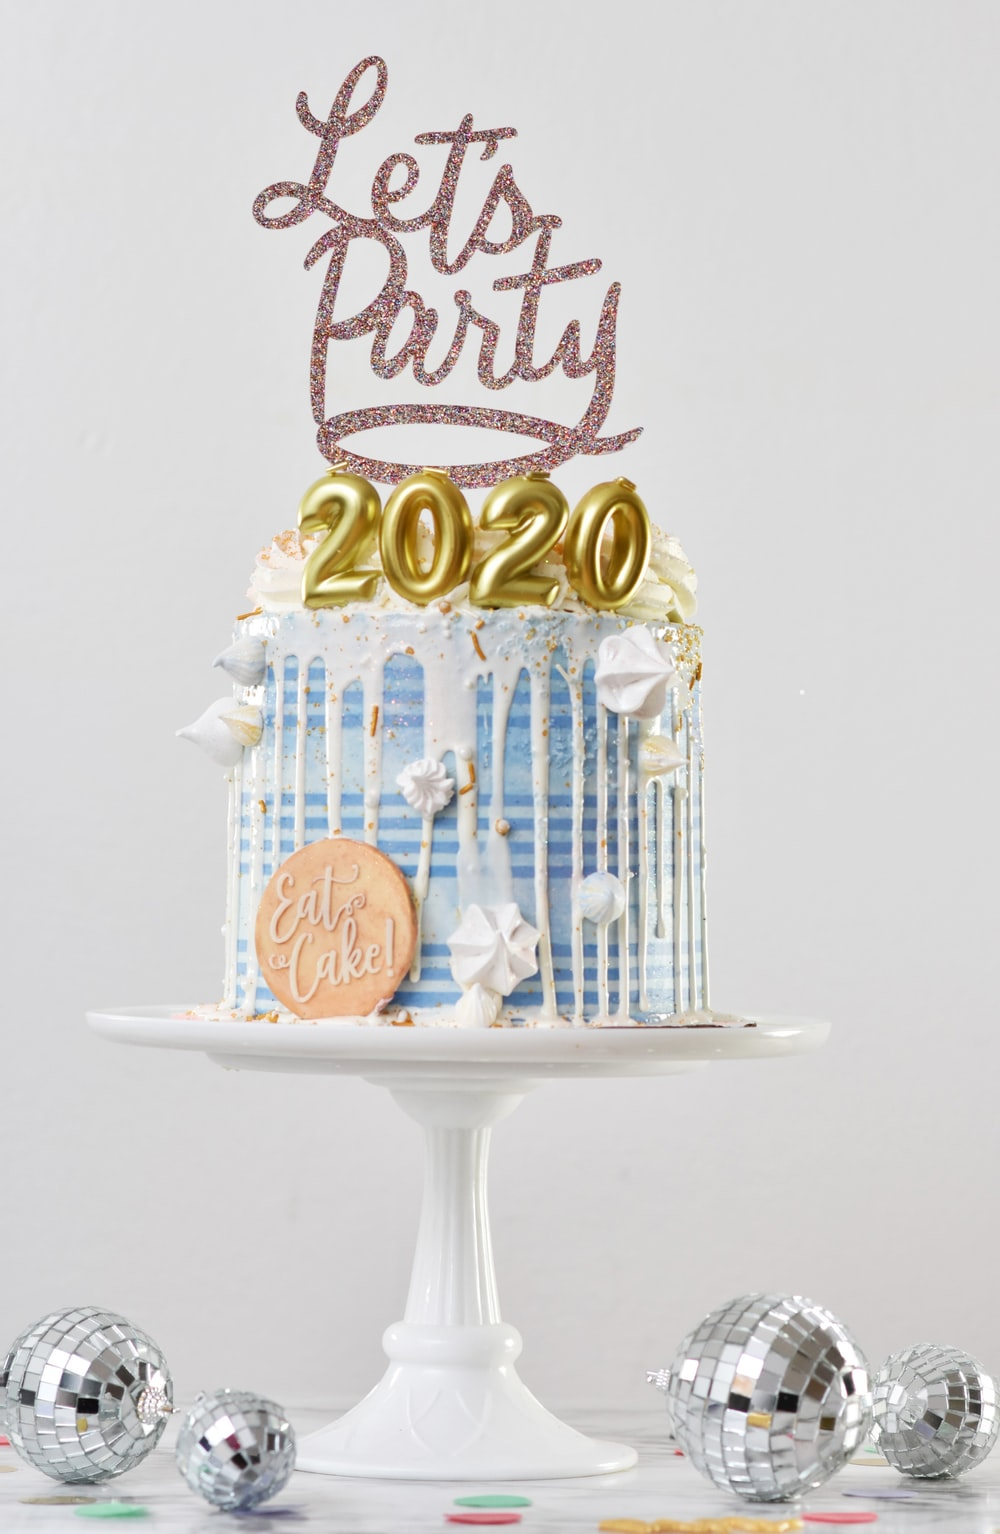 Let's Party 2020 cake on stand